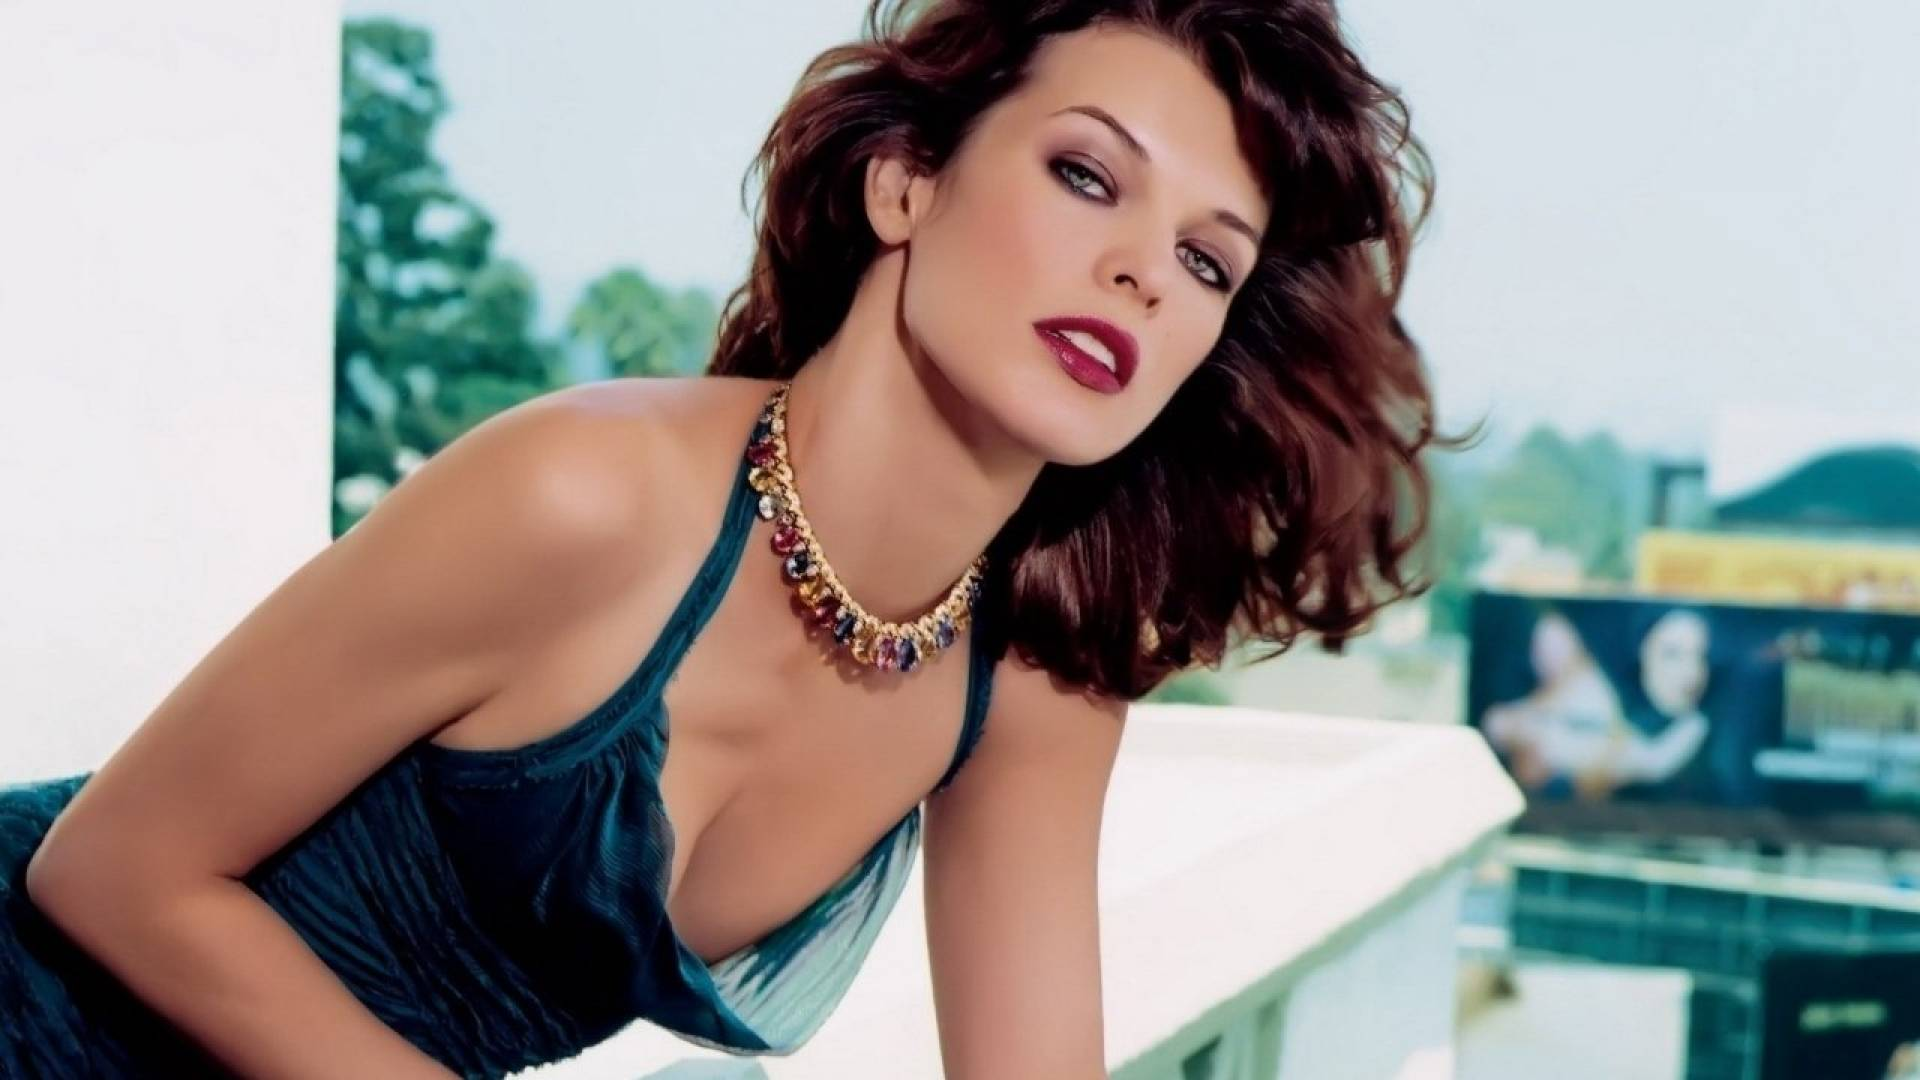 Milla Jovovich Hot Pics, Sexy Topless Images, Videos